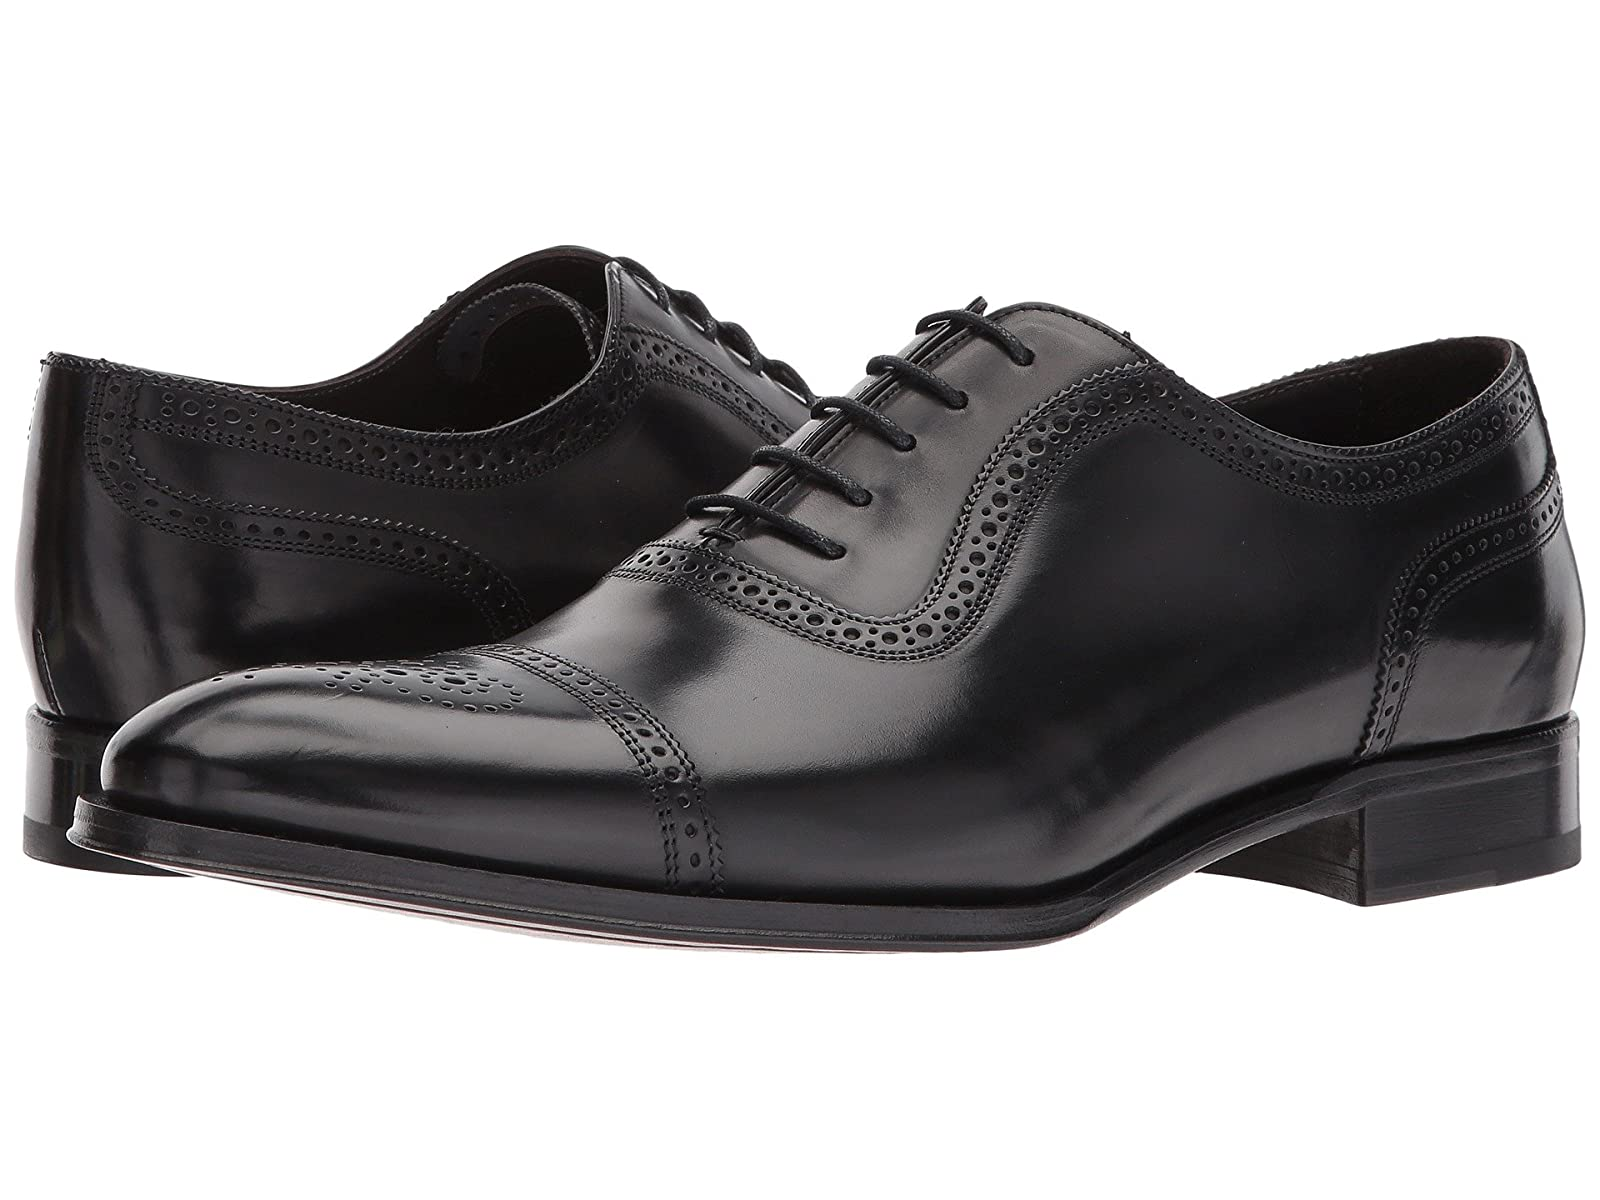 To Boot New York ButlerAtmospheric grades have affordable shoes